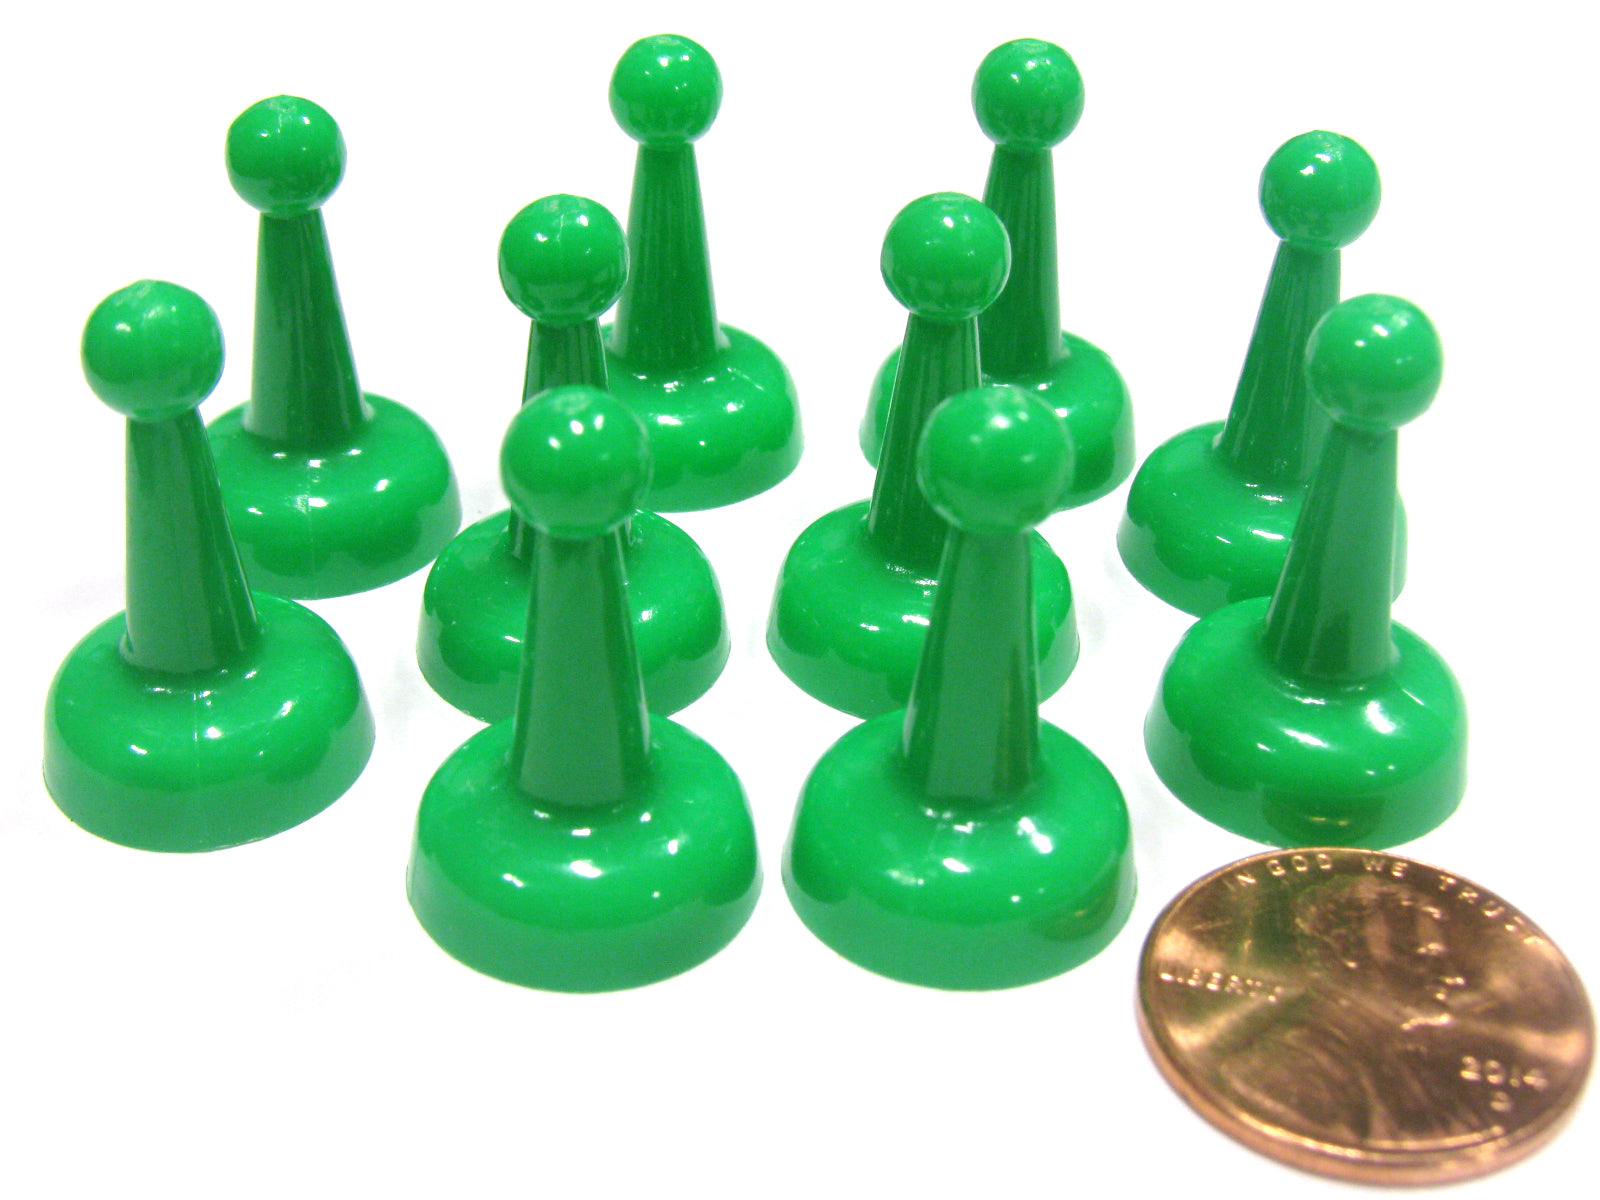 Set of 10 Standard Pawns 25mm Peg Pieces for Board Game Play - Green